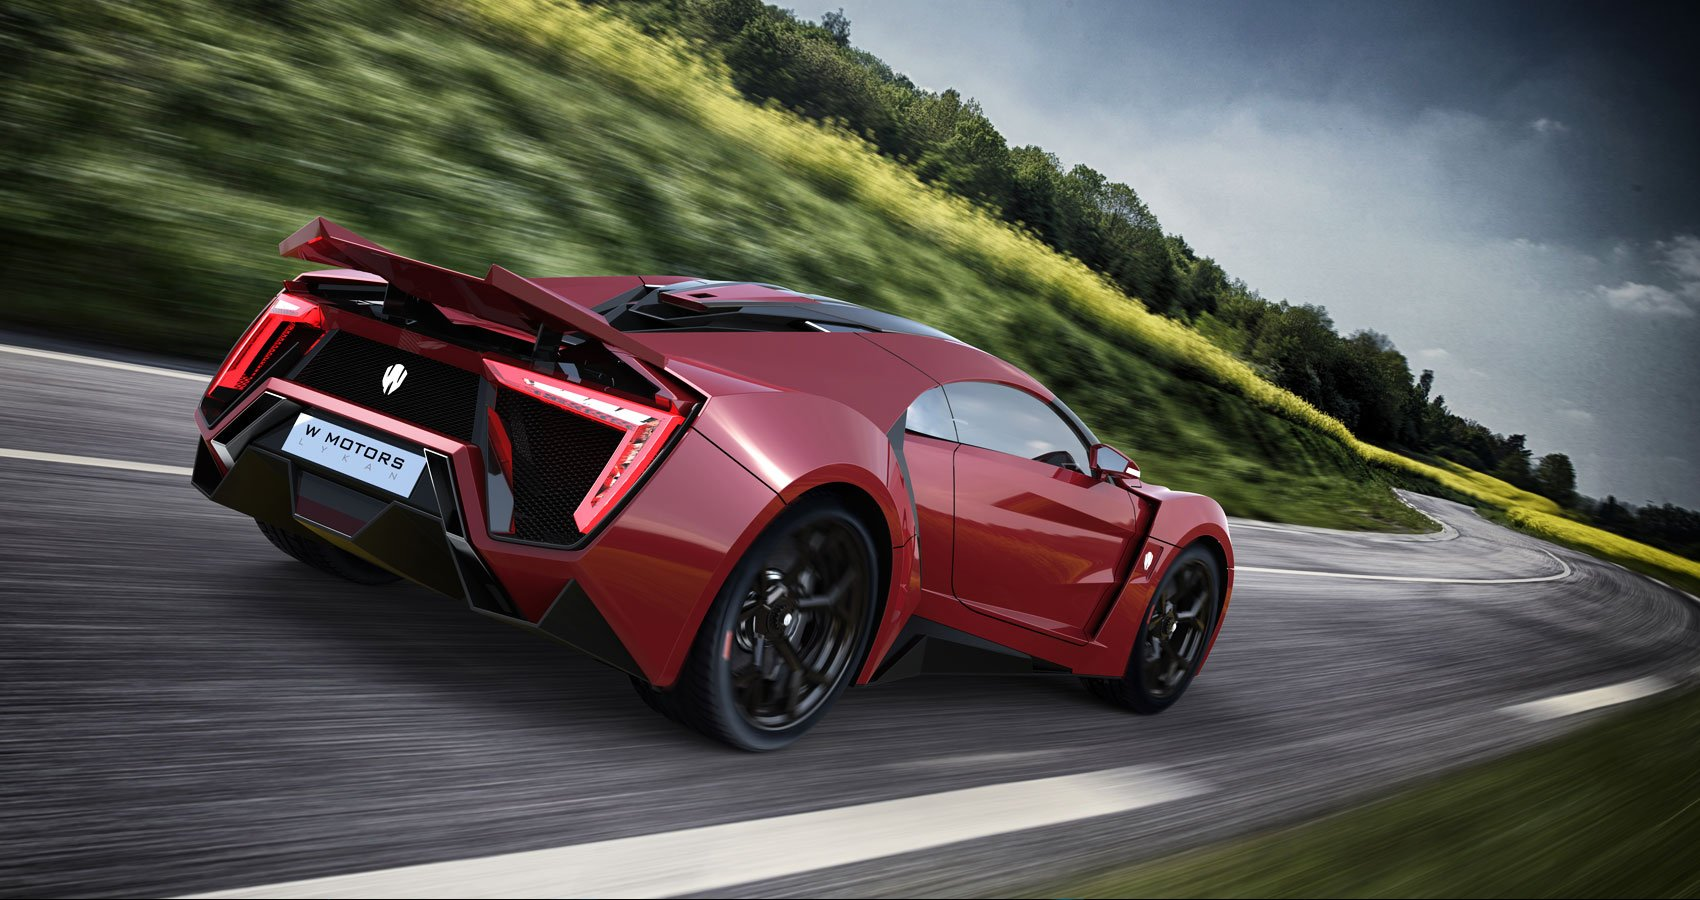 New Supercar Making Facility in Dubai To Start Production In 2016